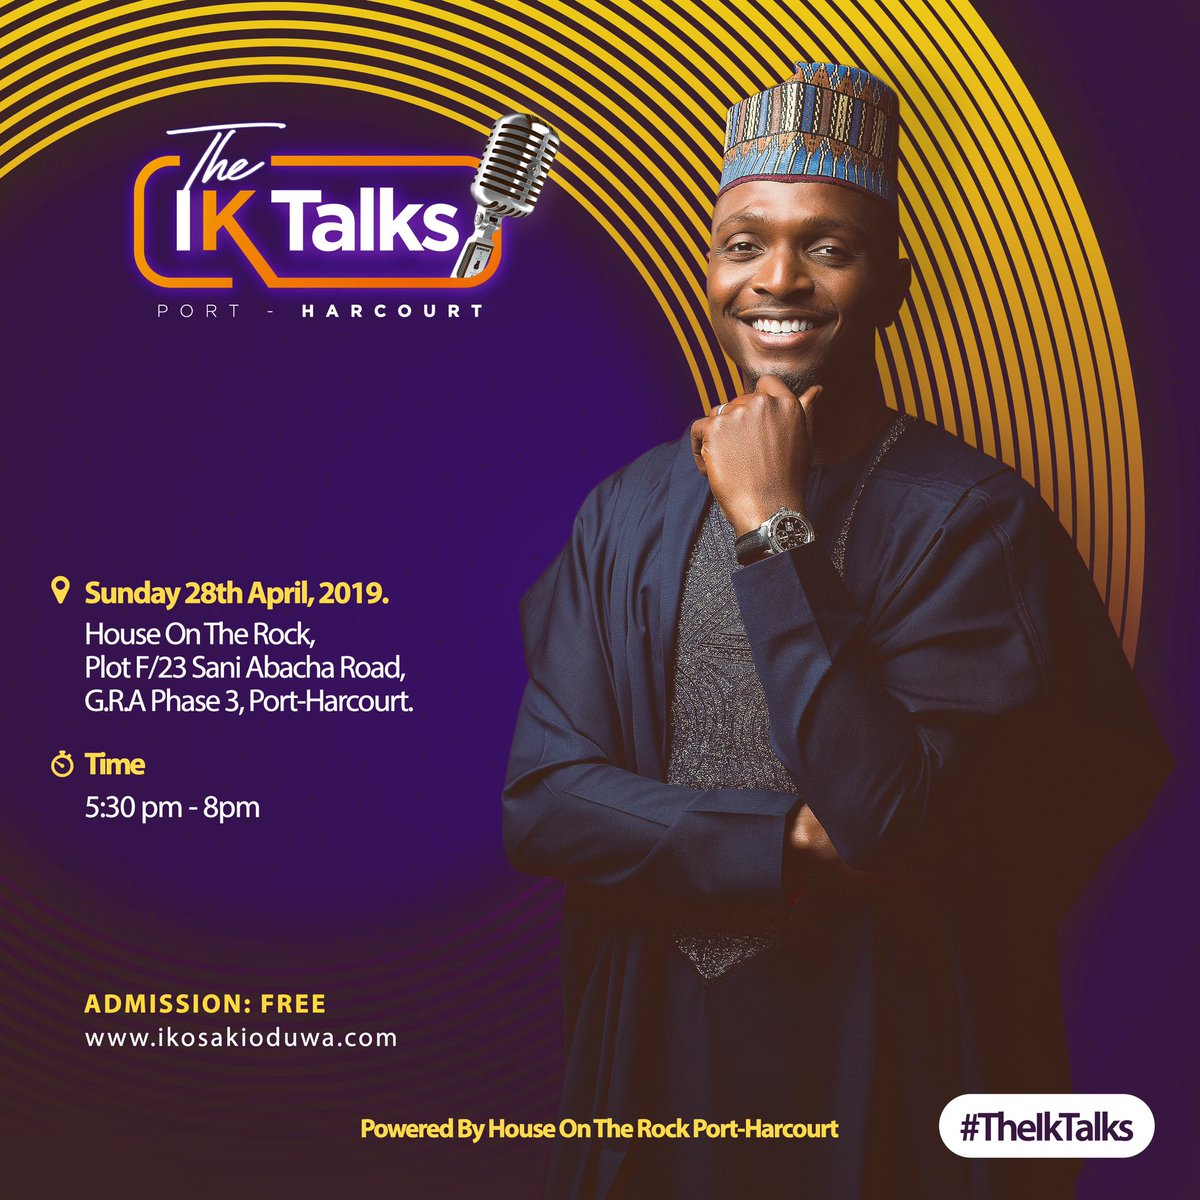 """Port Harcourt I'm looking forward to our time together. If you're developing a career that involves """"Public Speaking"""", this one's for you. Shout out to House On The Rock PH for powering this. #TalkDoesntNeedToBeCheap #TalkForALiving #AfricasFinest #ikosakioduwa #houseontherockph pic.twitter.com/lQCPnPIRaF"""